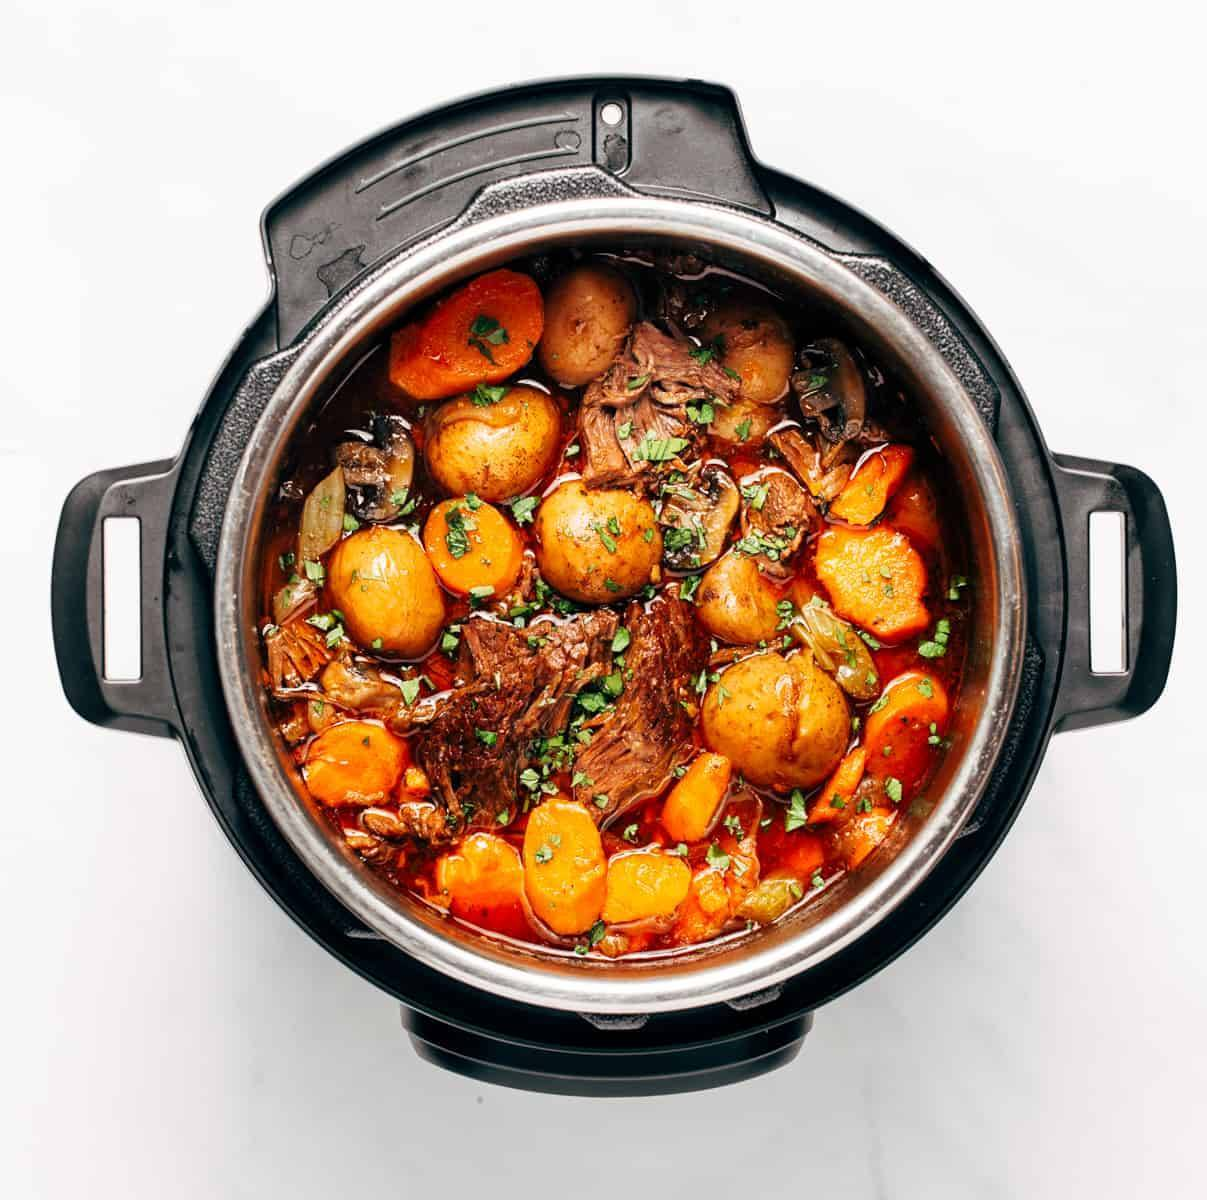 Stewed potatoes, meat, mushrooms, spices, and onions in an instant pot